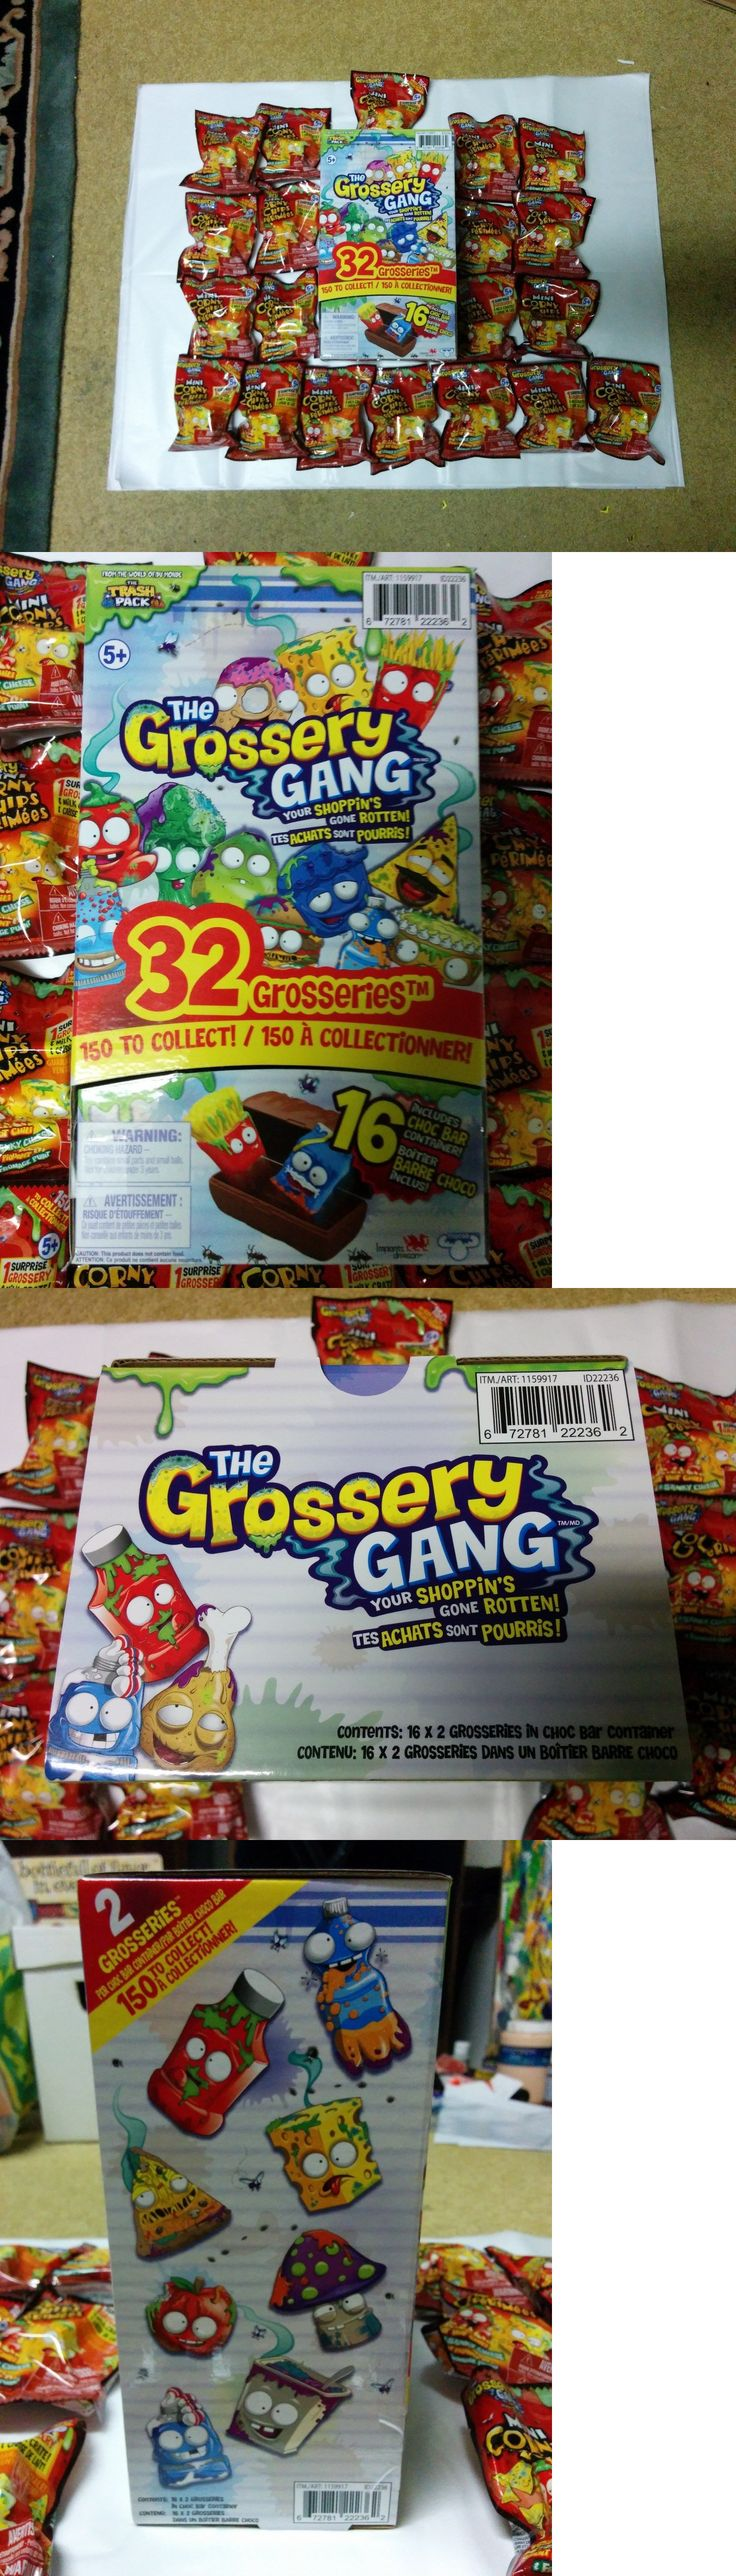 TV Movie and Character Toys 51031: Grossery Gang Series 1 + Mini Corny Chips Lot, New, Never Opened, Moose Toys -> BUY IT NOW ONLY: $125 on eBay!